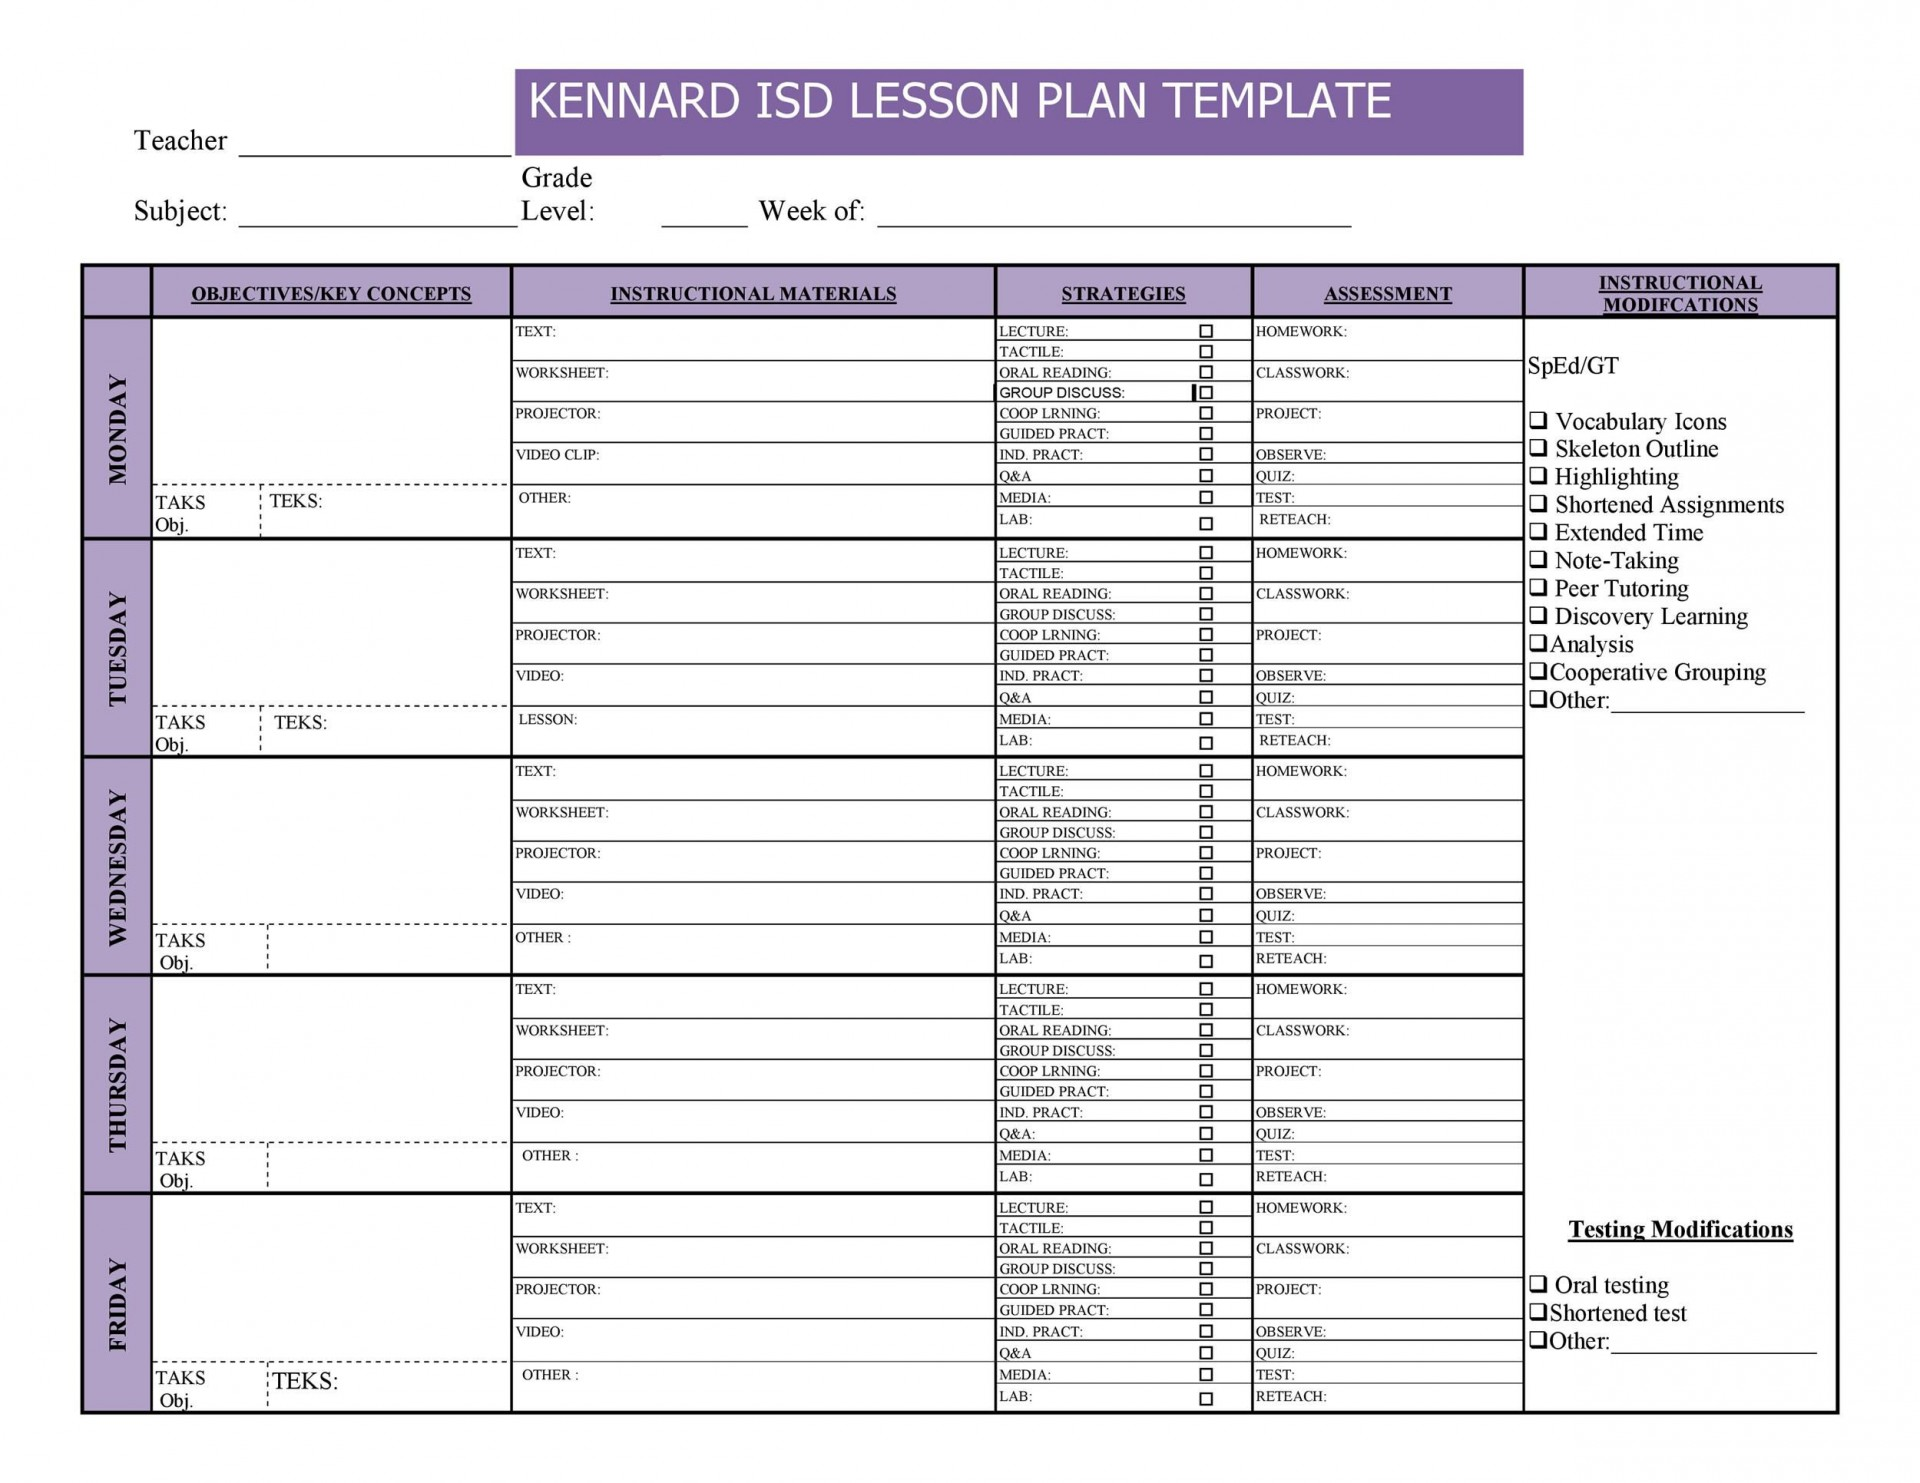 007 Simple Weekly Lesson Plan Template Image  Editable Preschool Pdf Google Sheet1920